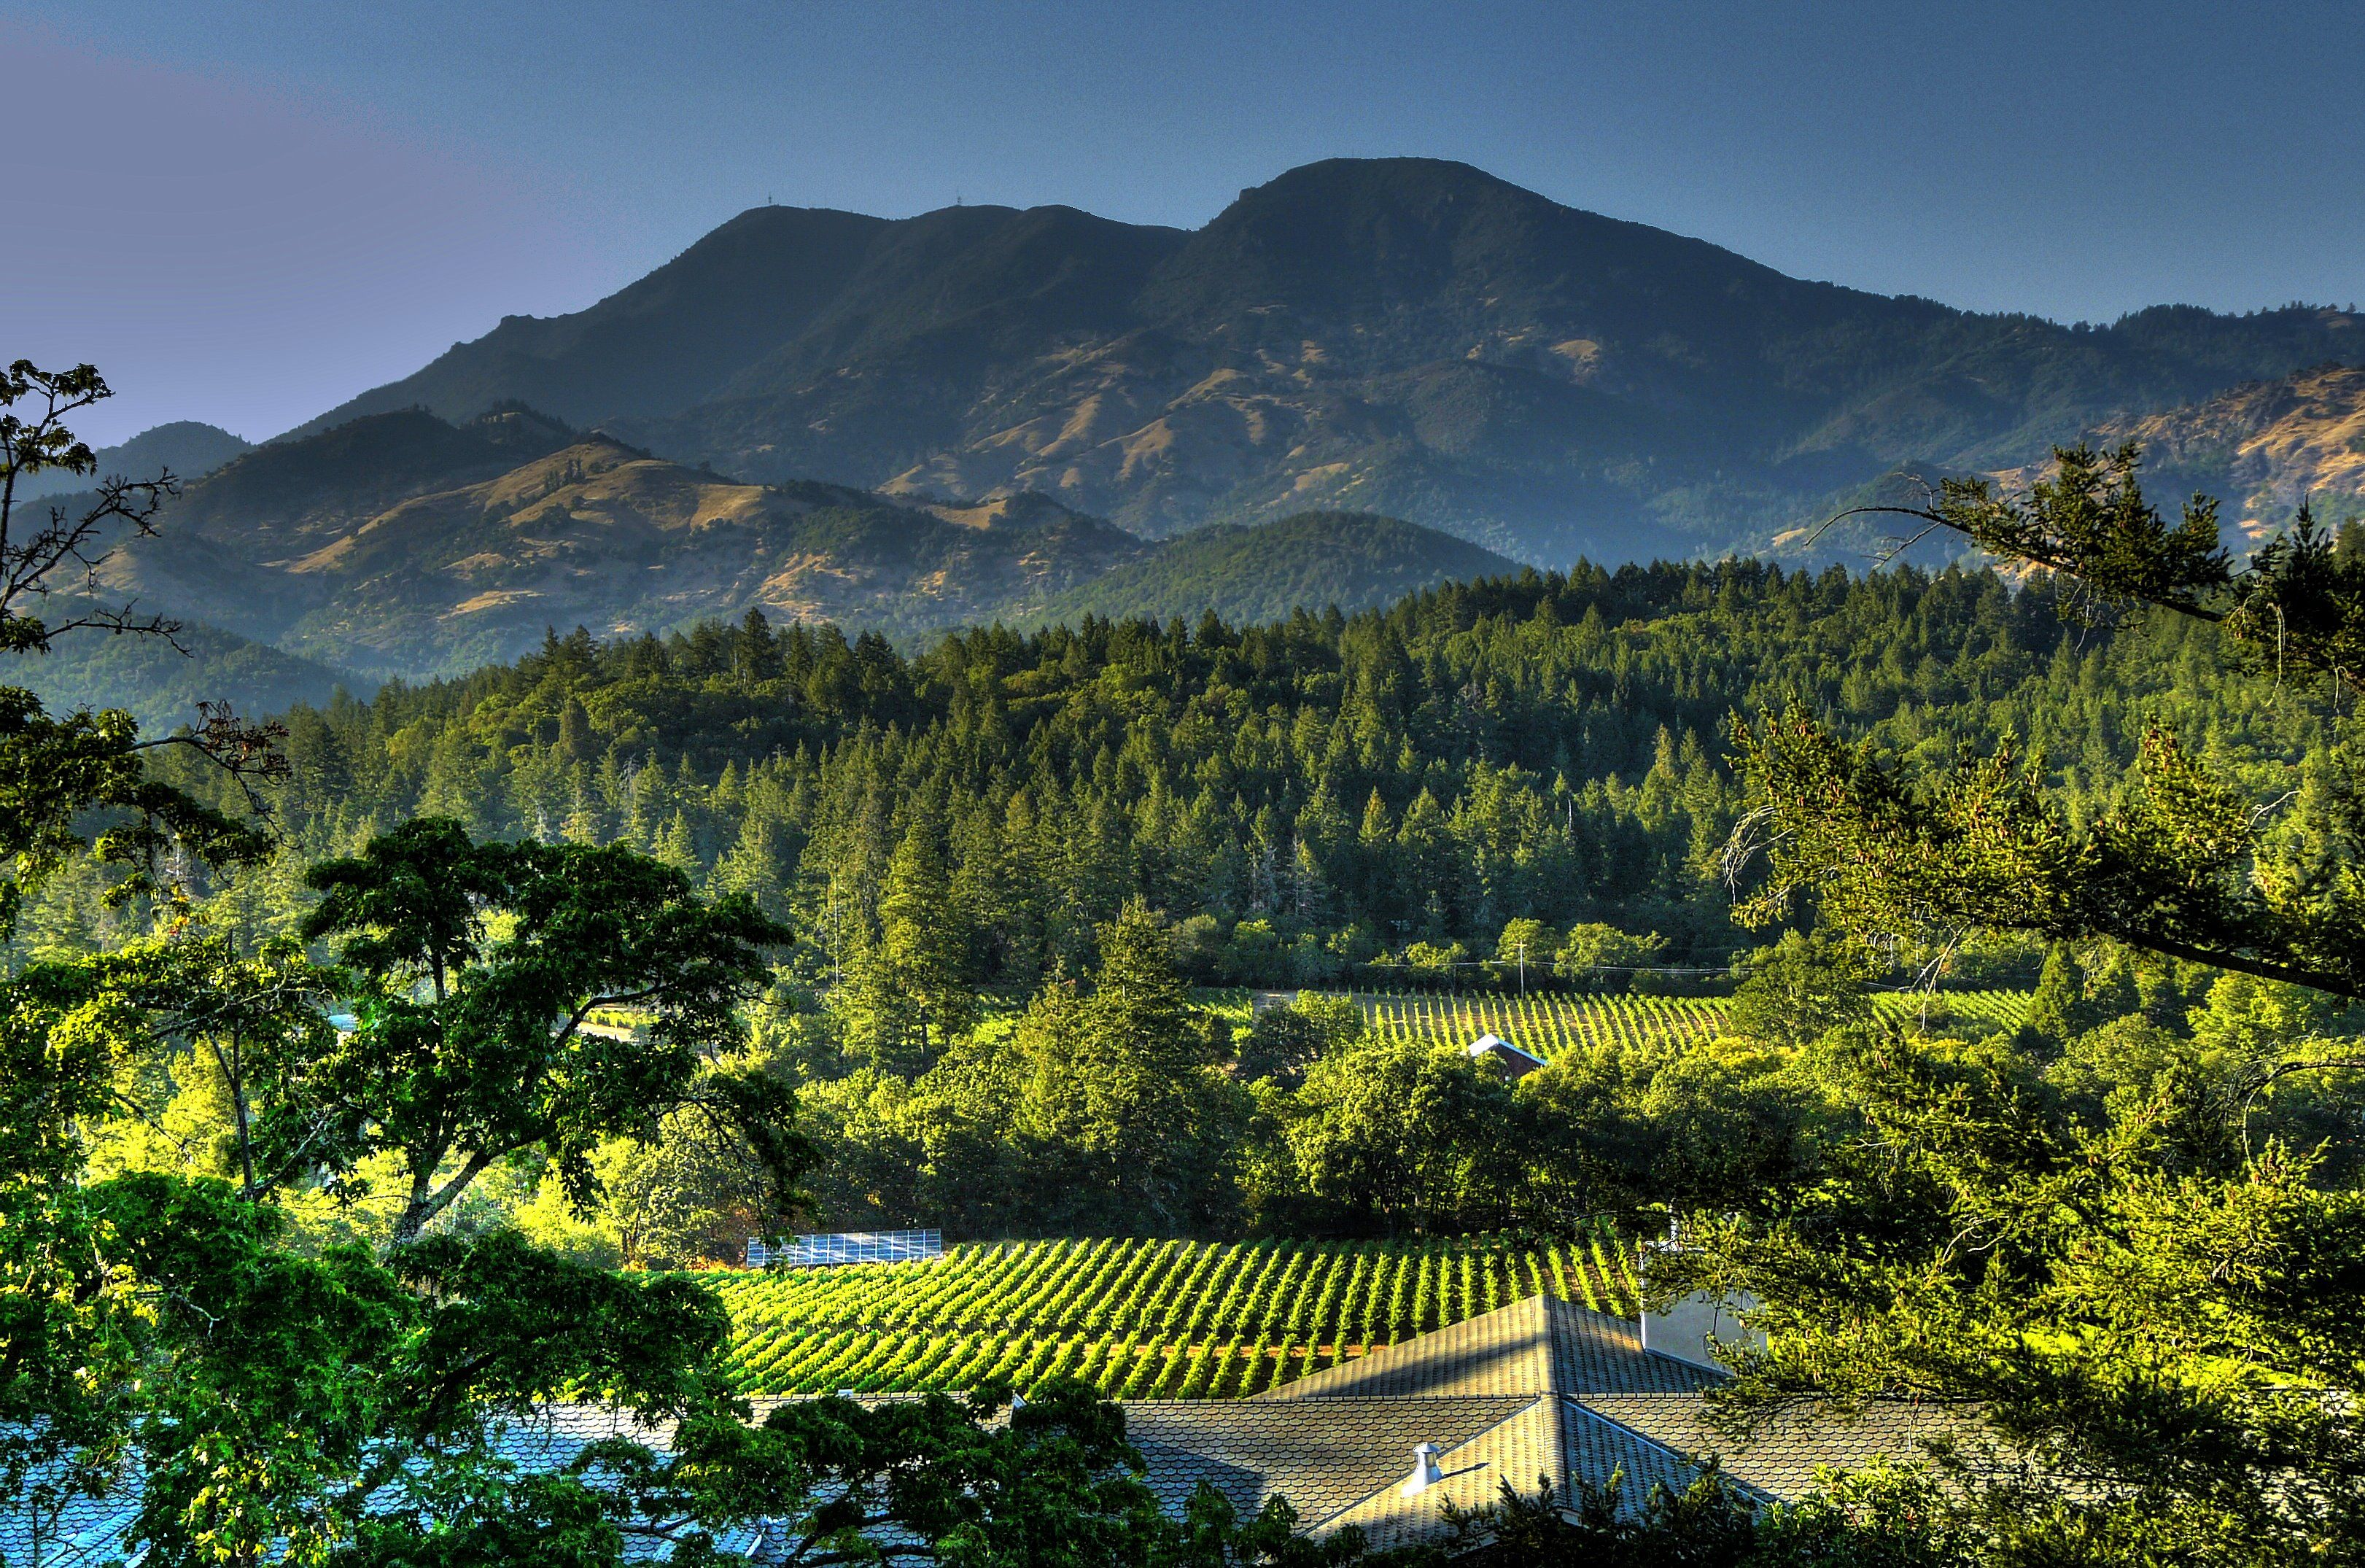 Pine Mountain in the back of a Vineyard landscape at ...